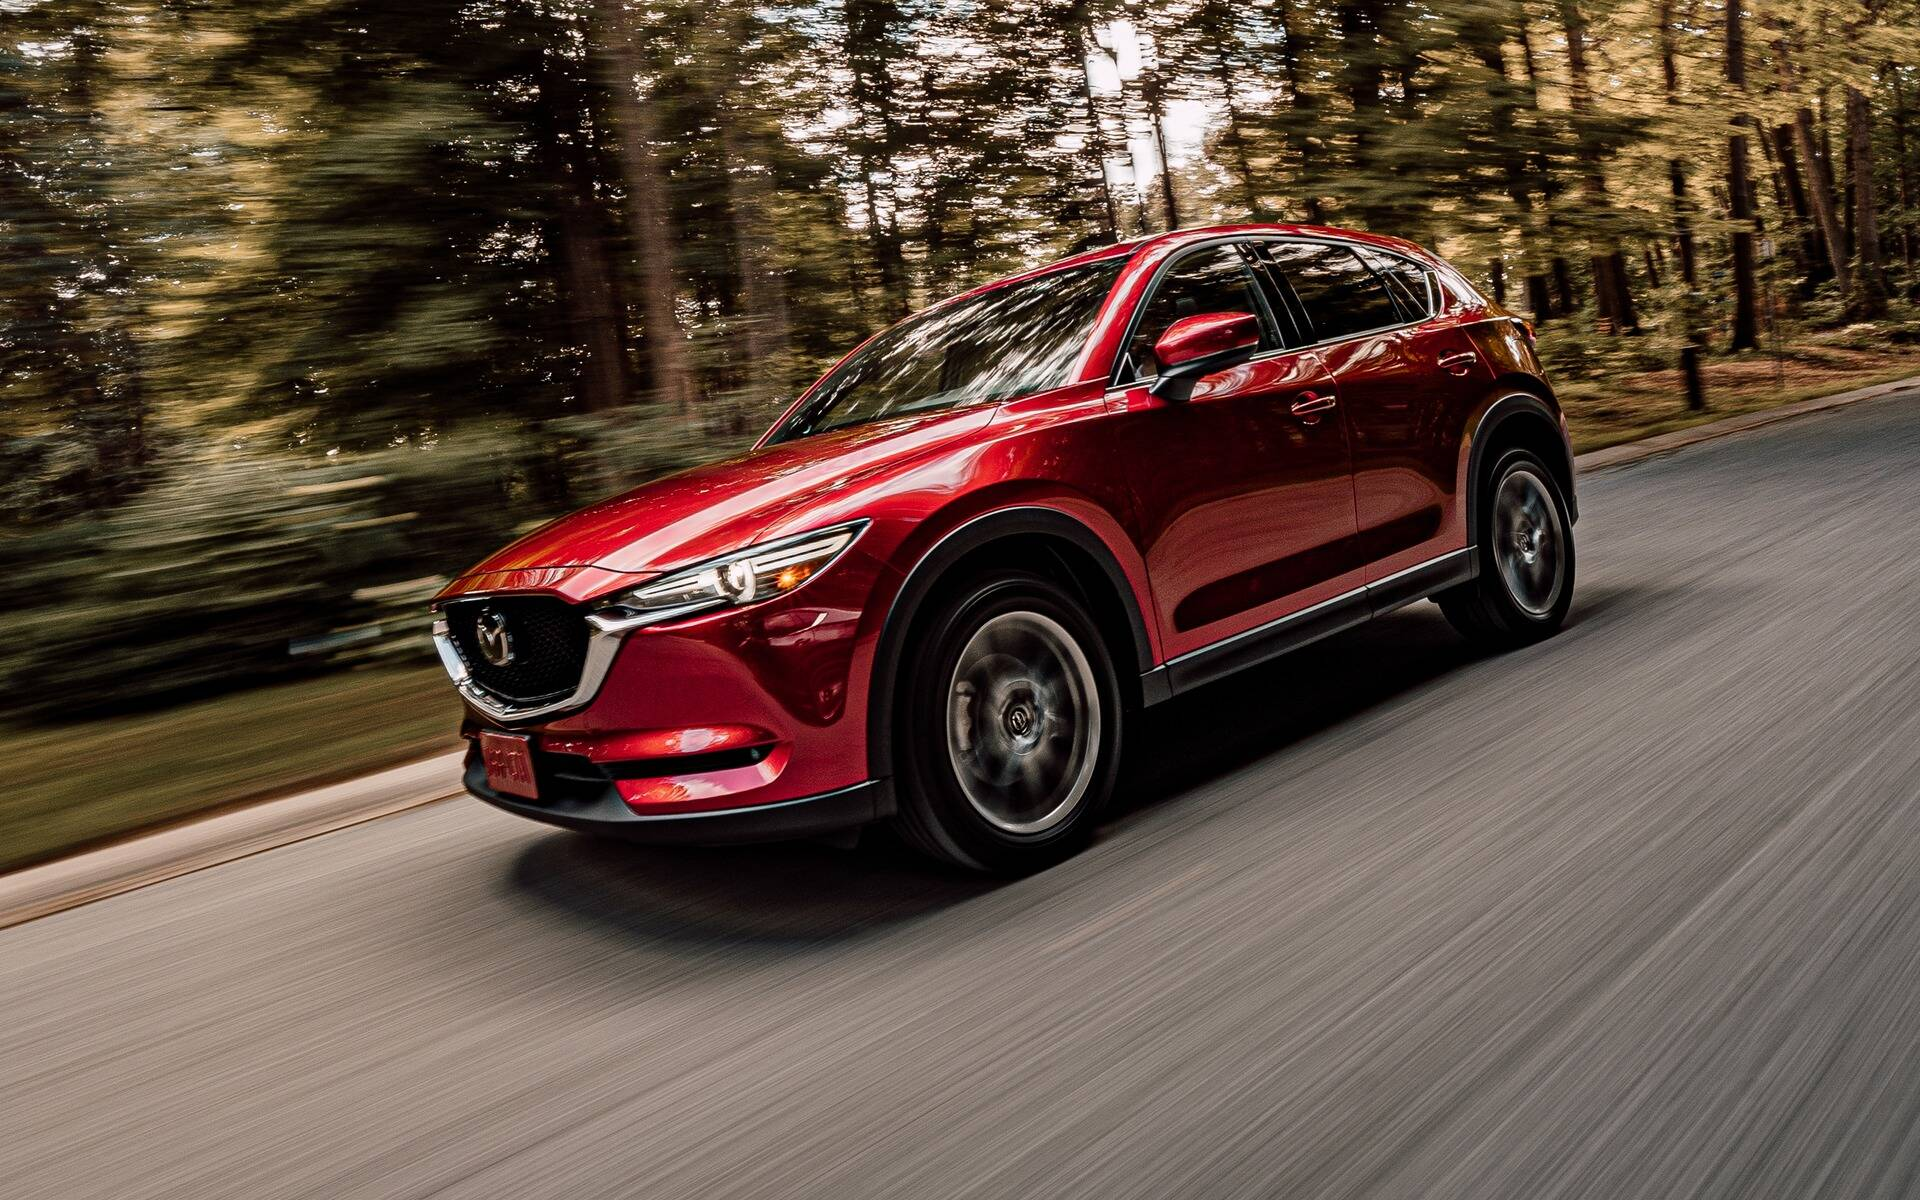 Rumors 2021 Mazda CX-5